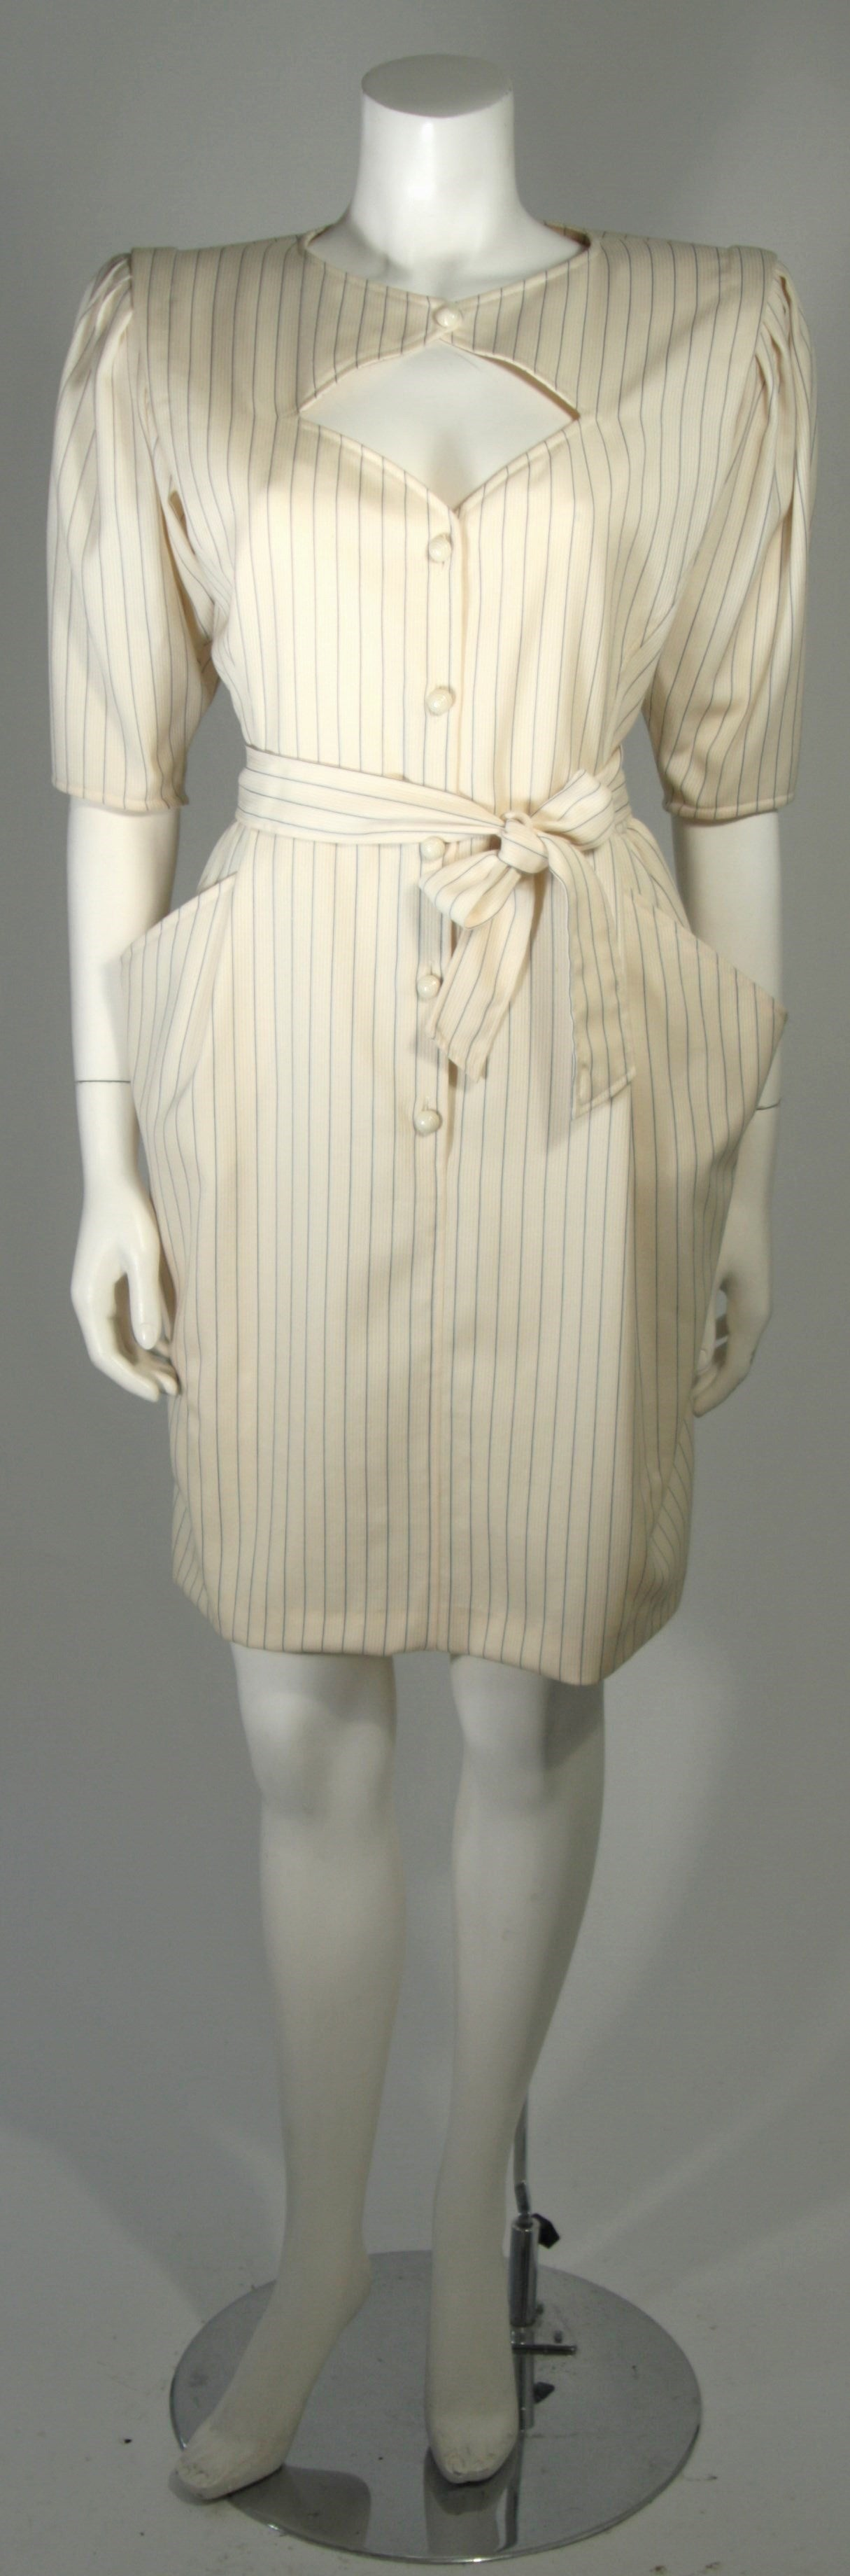 This Ungaro cocktail dress is composed of a cream pin stripe wool. The dress features center front buttons and a belt. In excellent condition. Made in Italy.